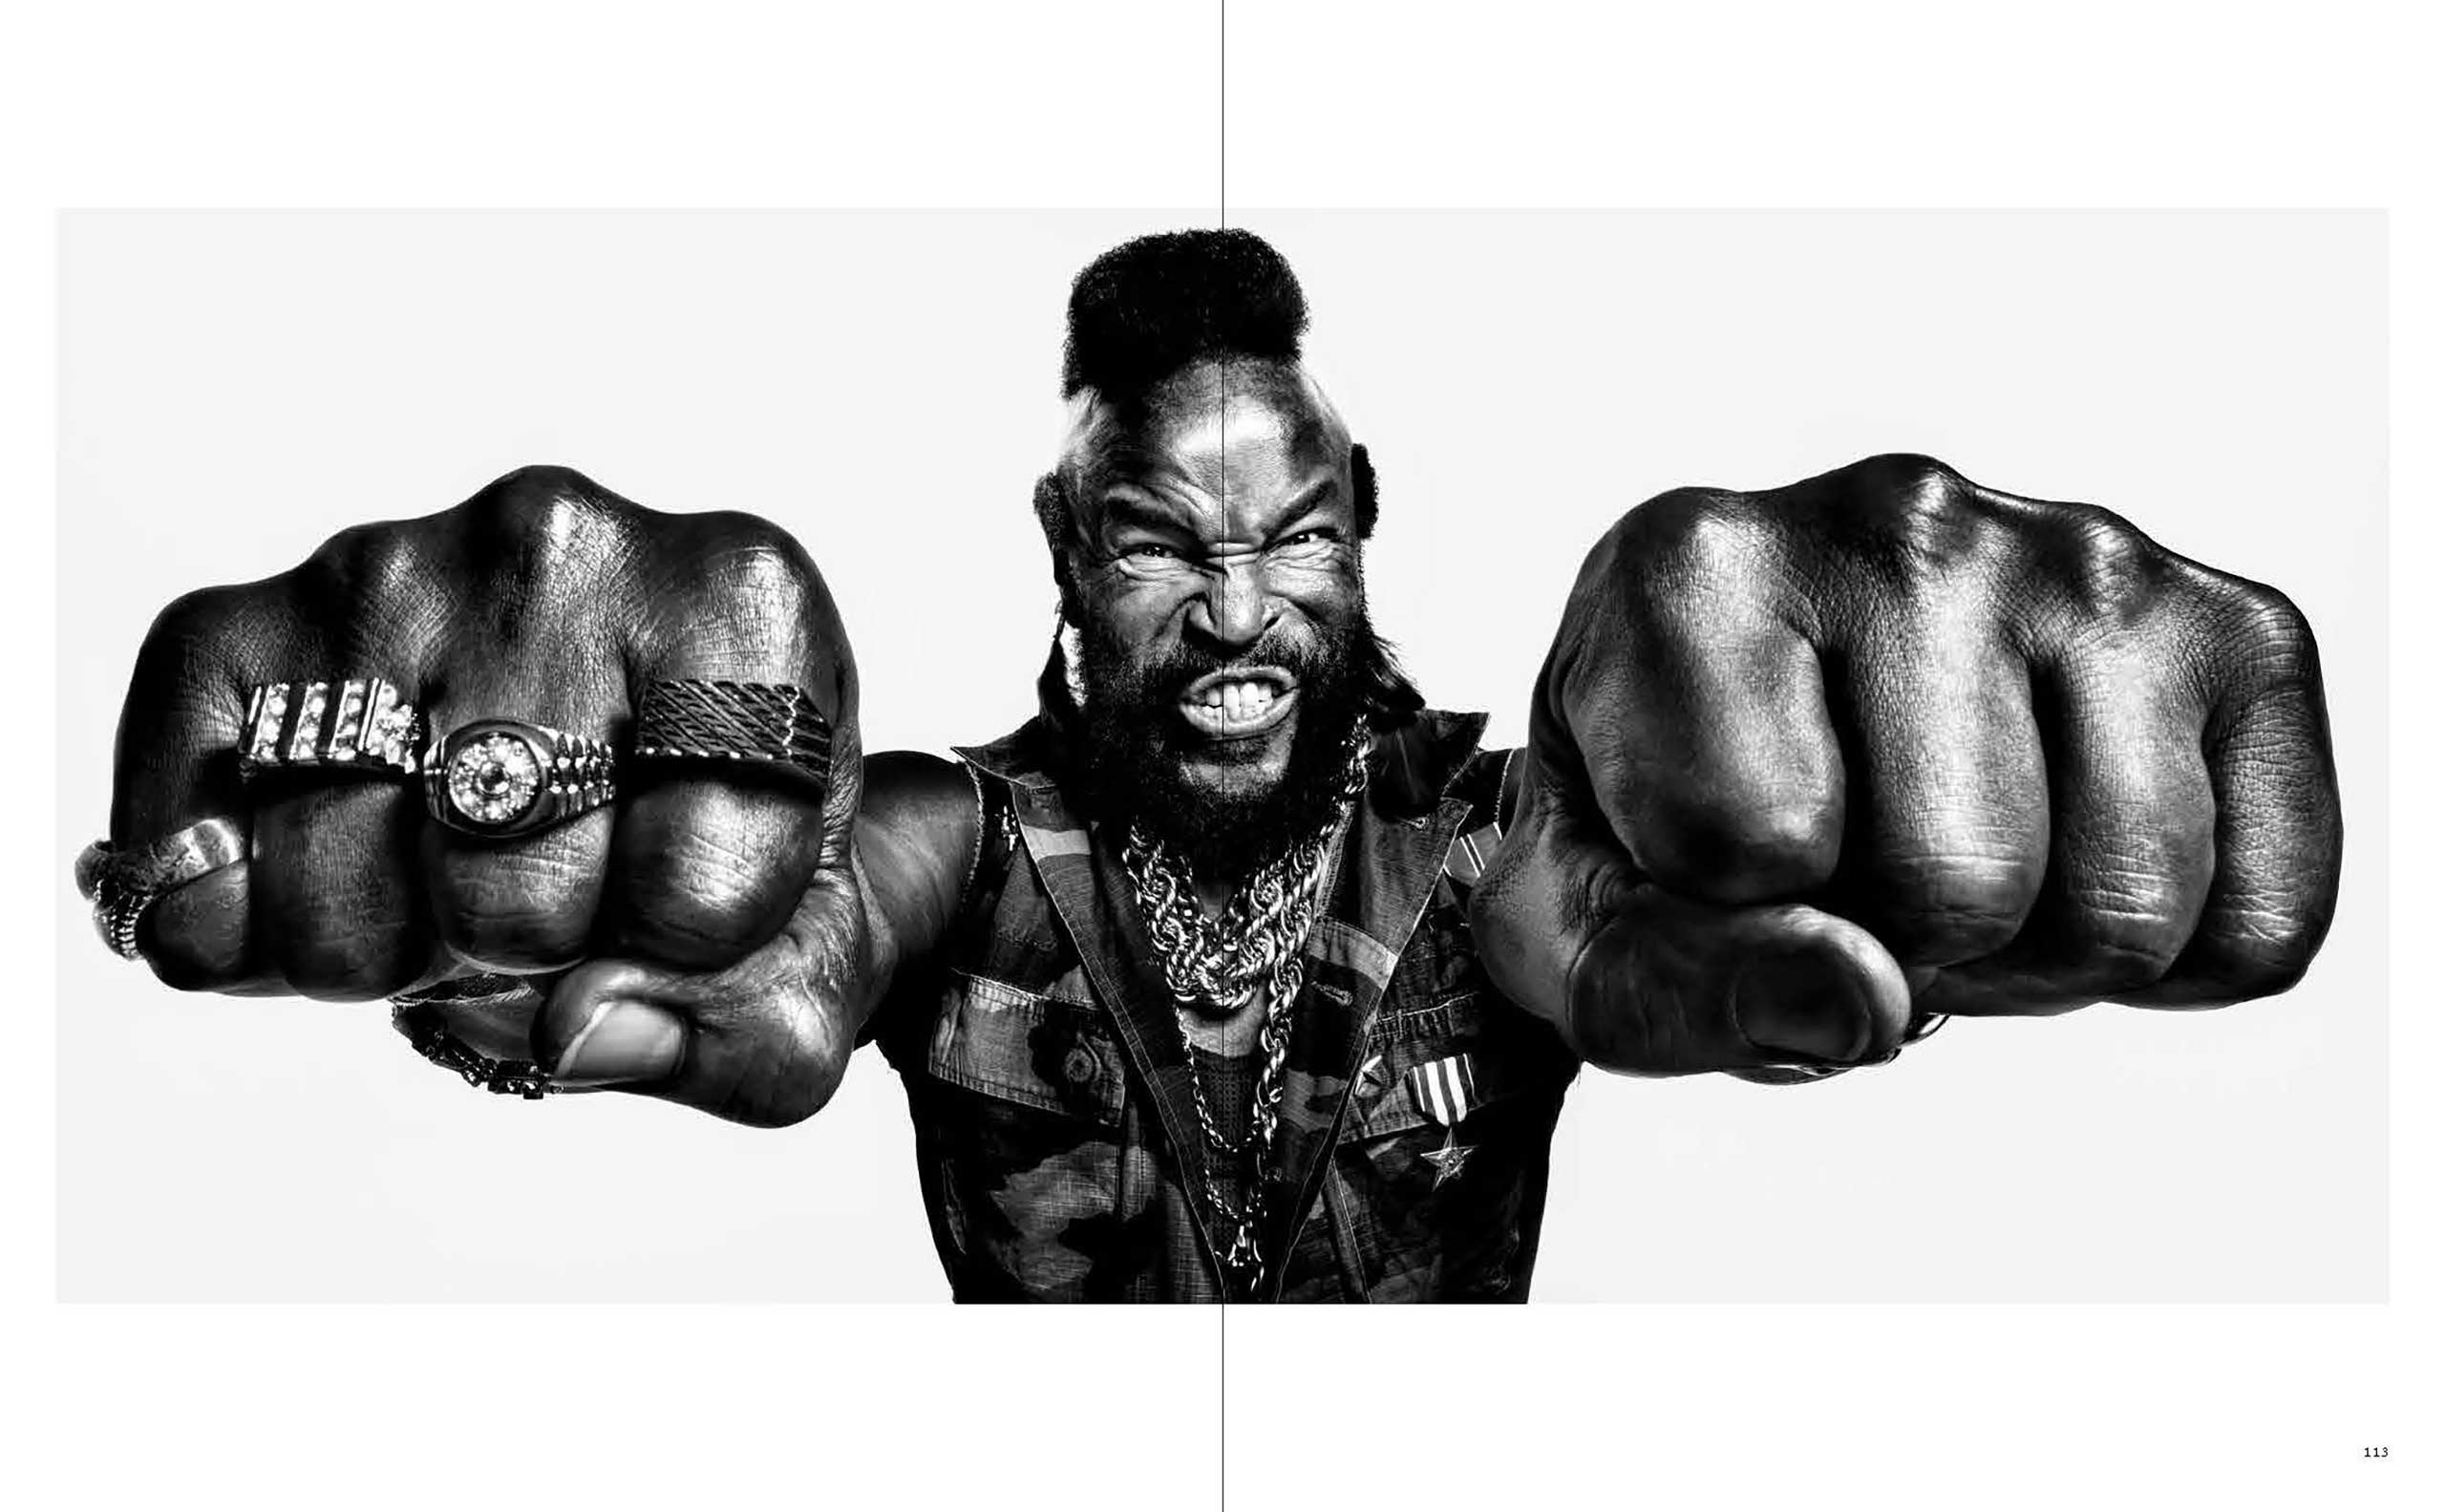 Mr. T, Roodebloem Studios, Cape Town, South Africa, 2010